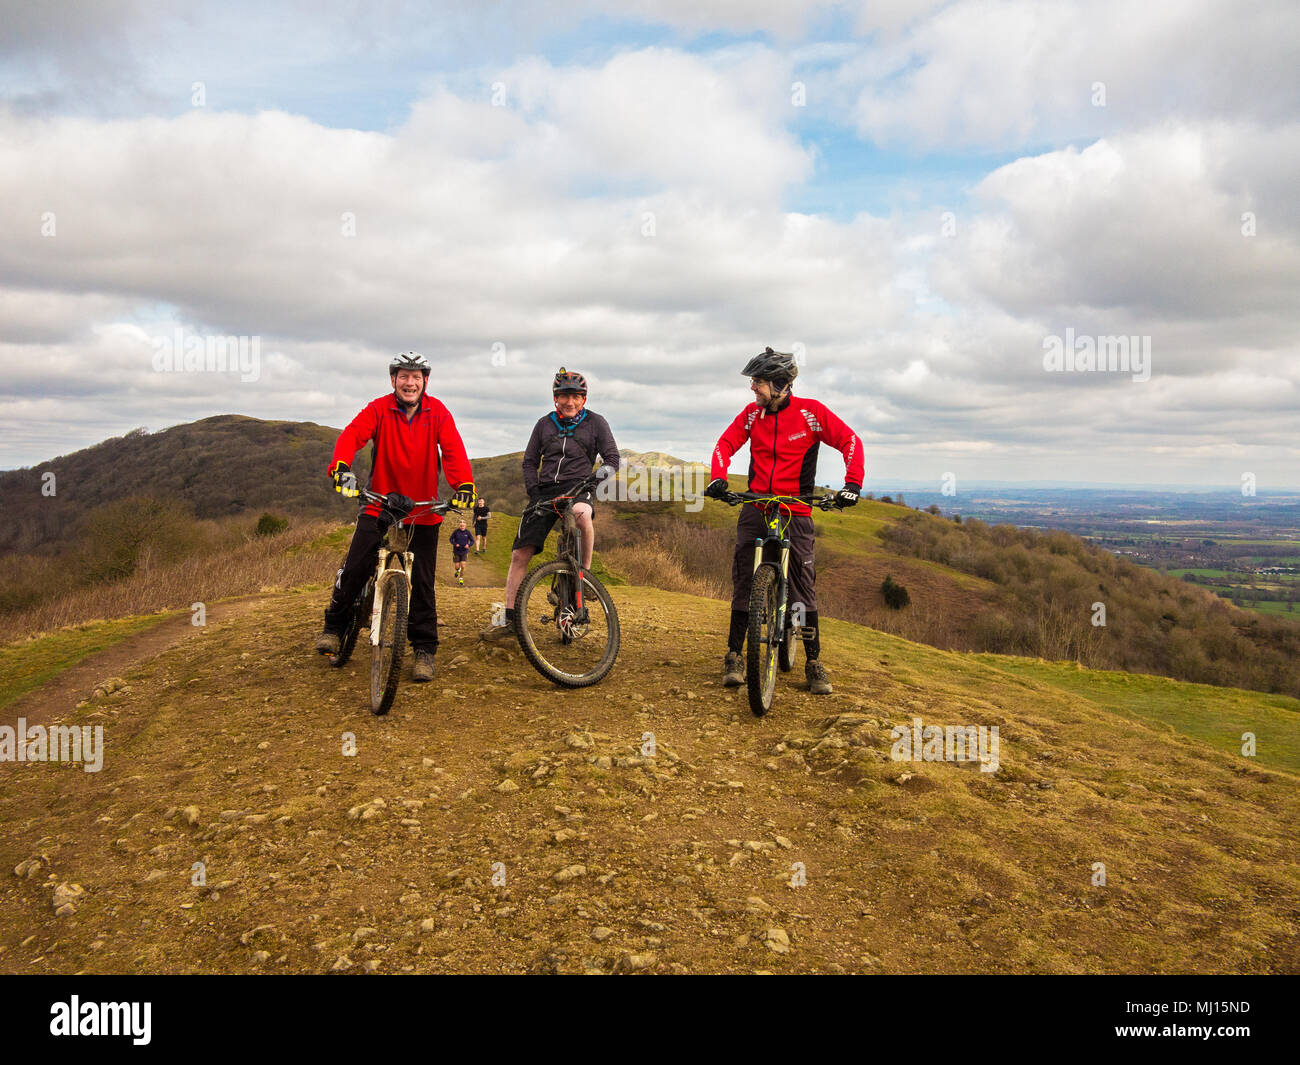 Get Off Your Bike Stock Photos Images Alamy Police Roadbike Toronto Greey Blue Men Male Road Mountain Riders Wearing Cycle Helmets Take A Rest While Riding The